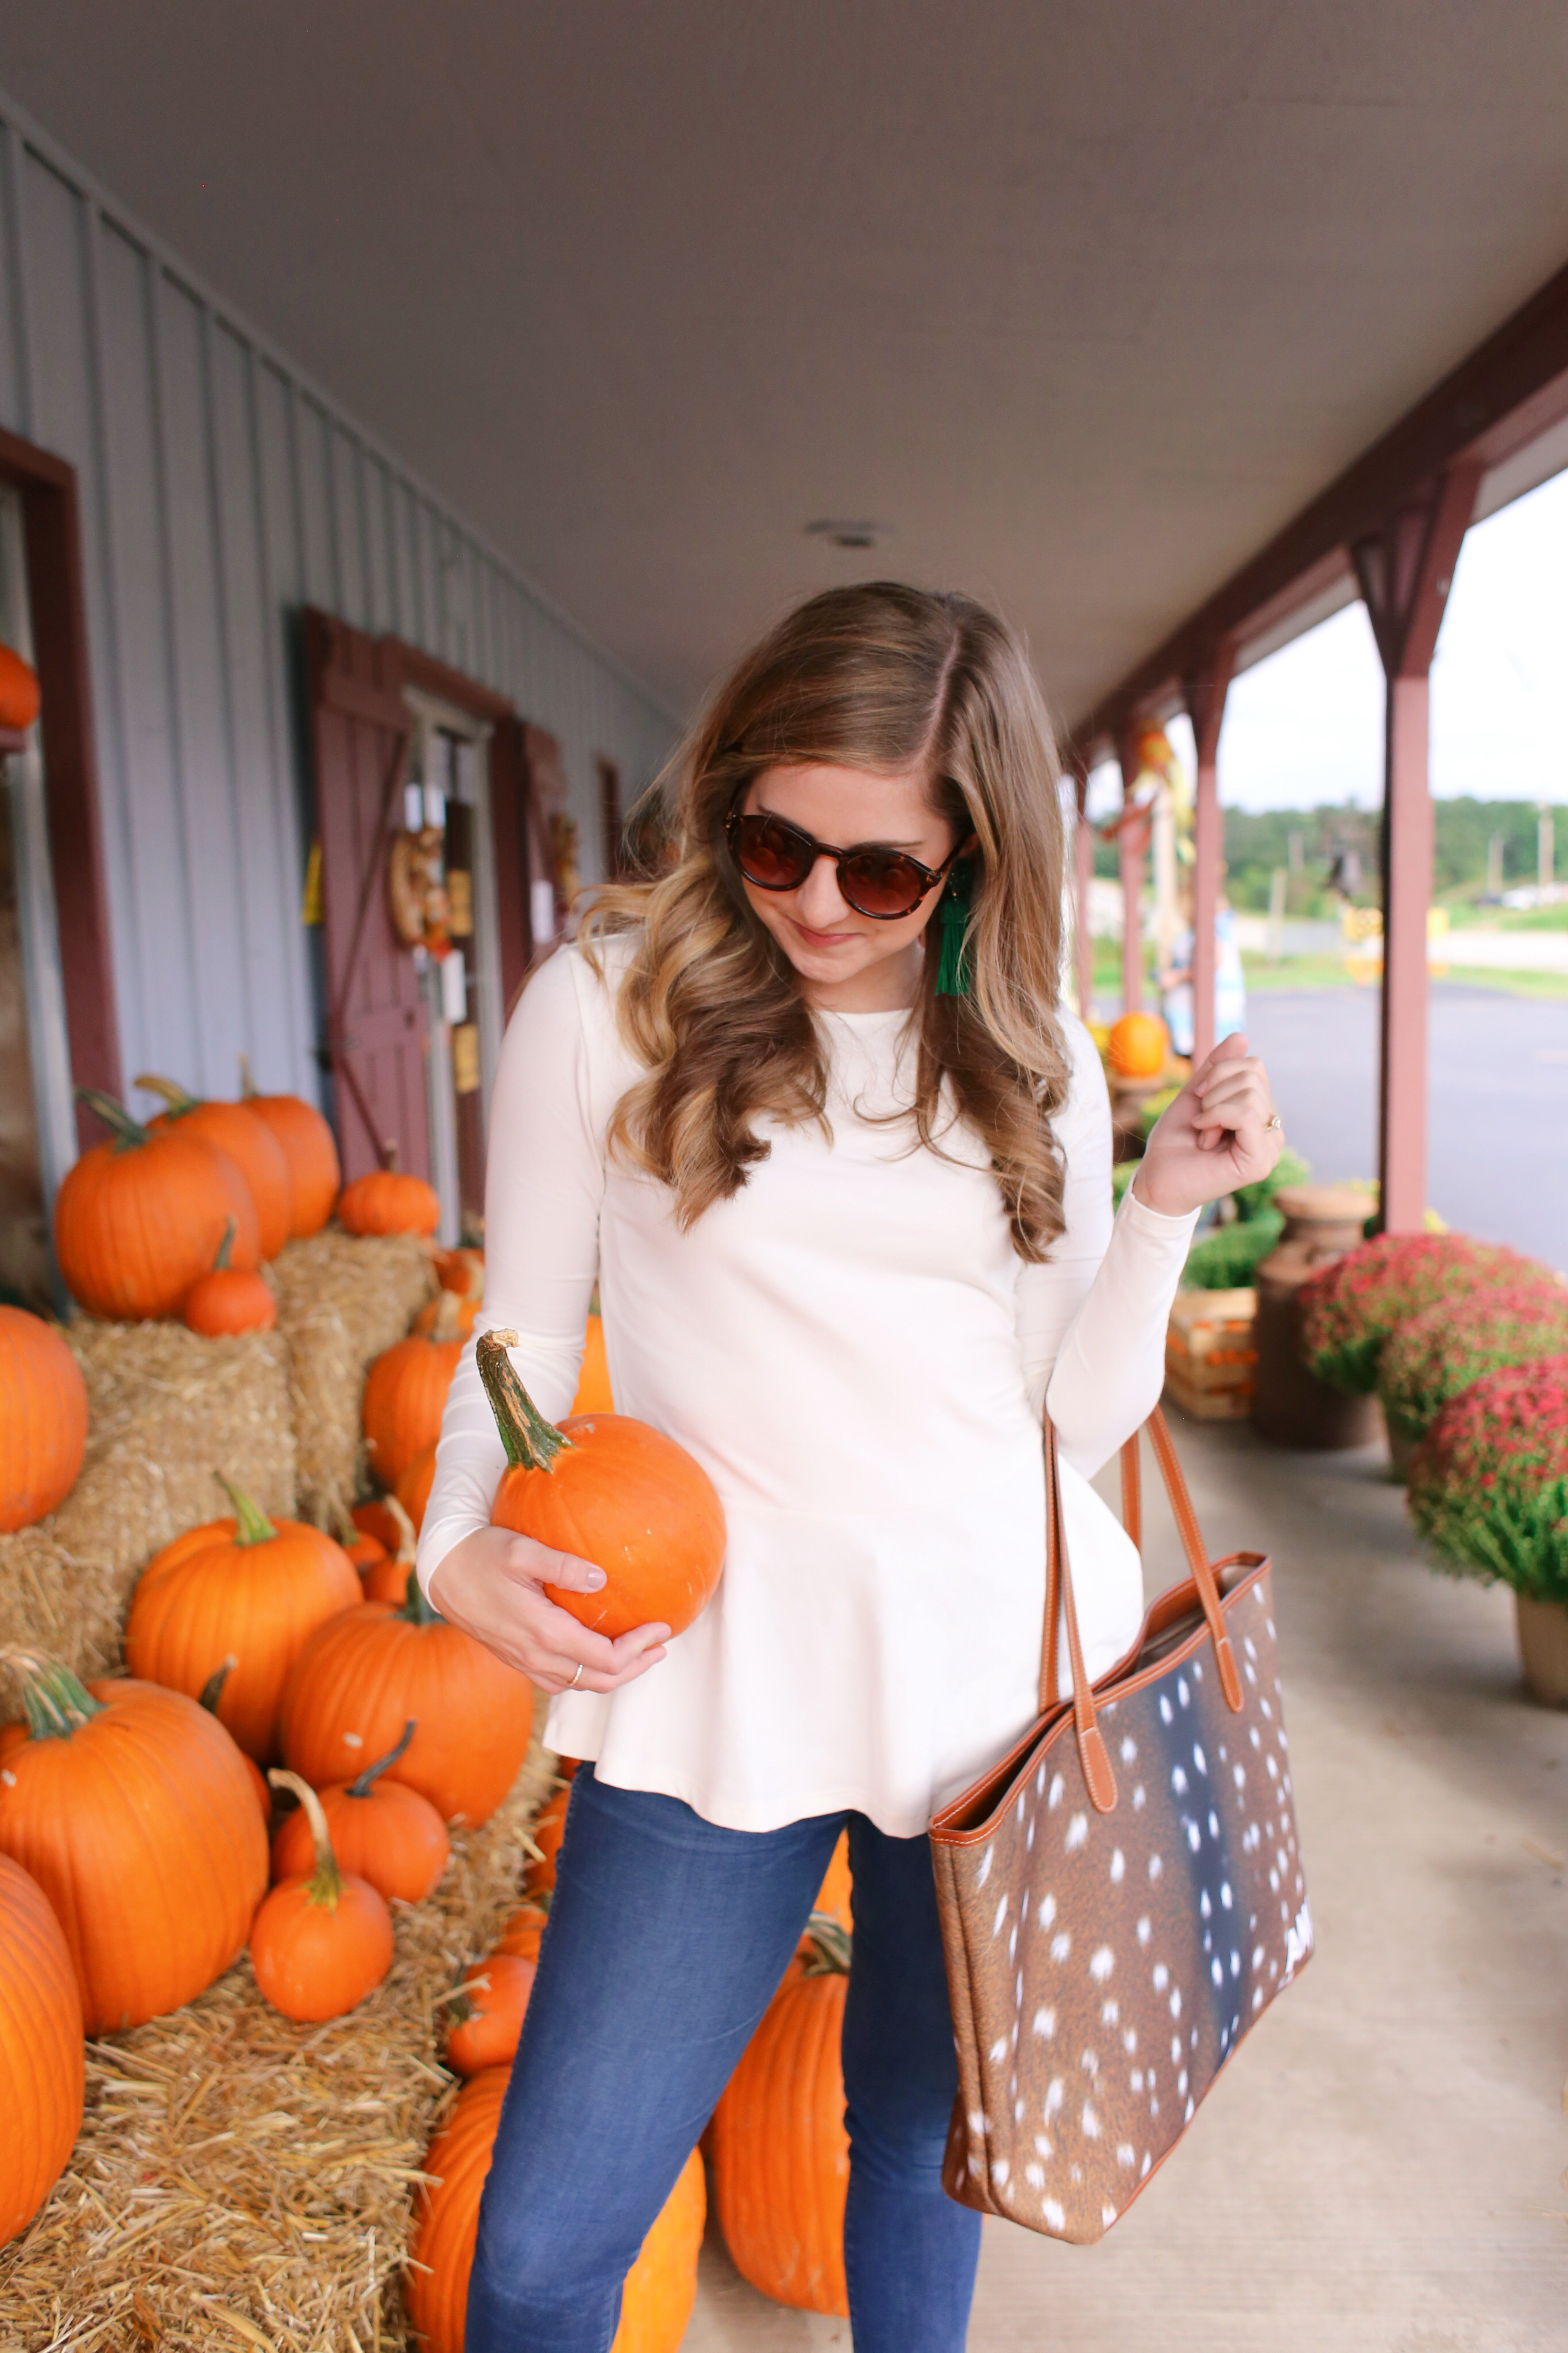 Pumpkin Patch Outfit Inspiration